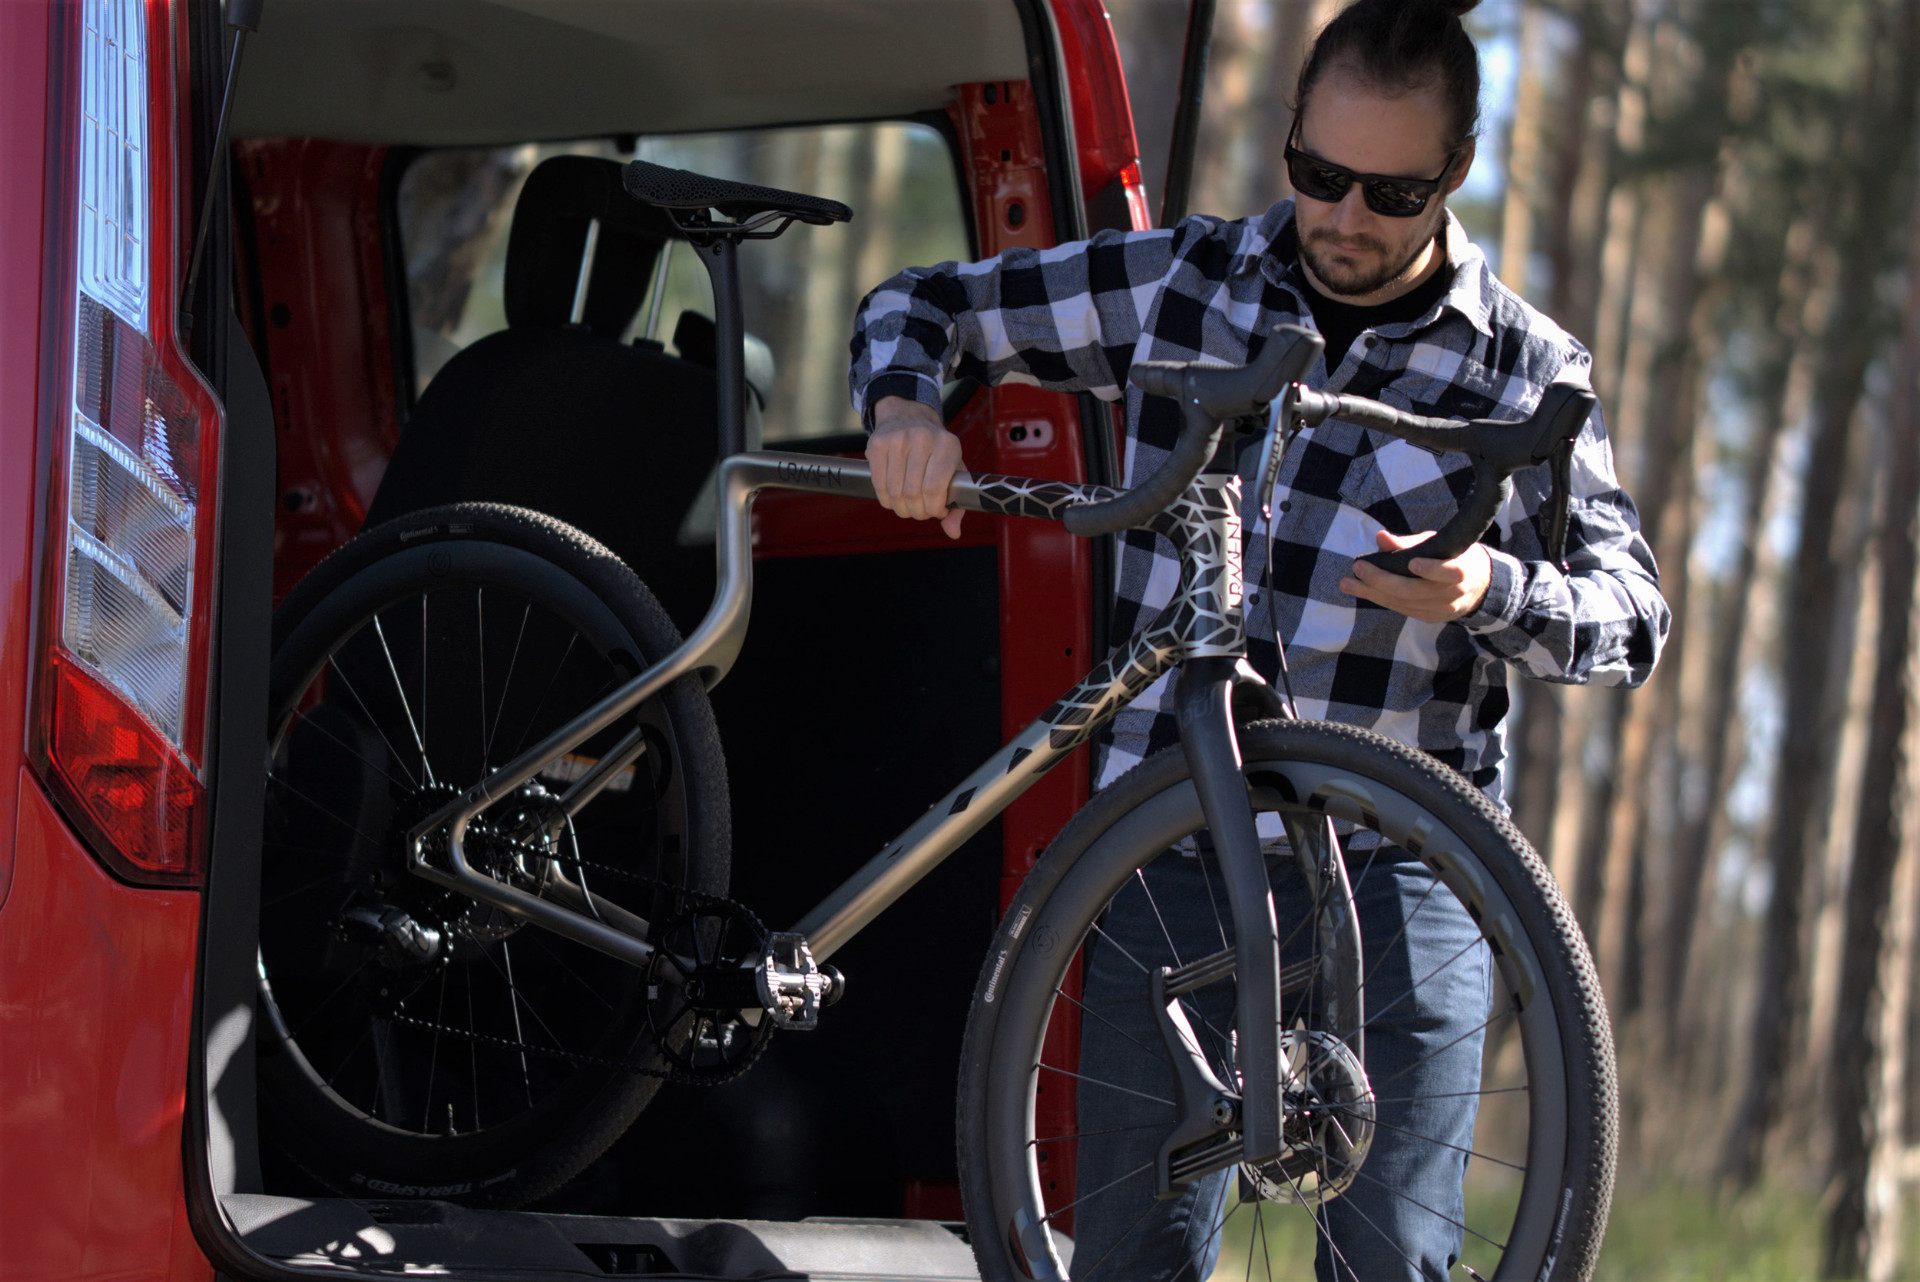 The Urwahn Acros features a unique frame design in the back, and a Lauf leaf-spring suspension fork in the front